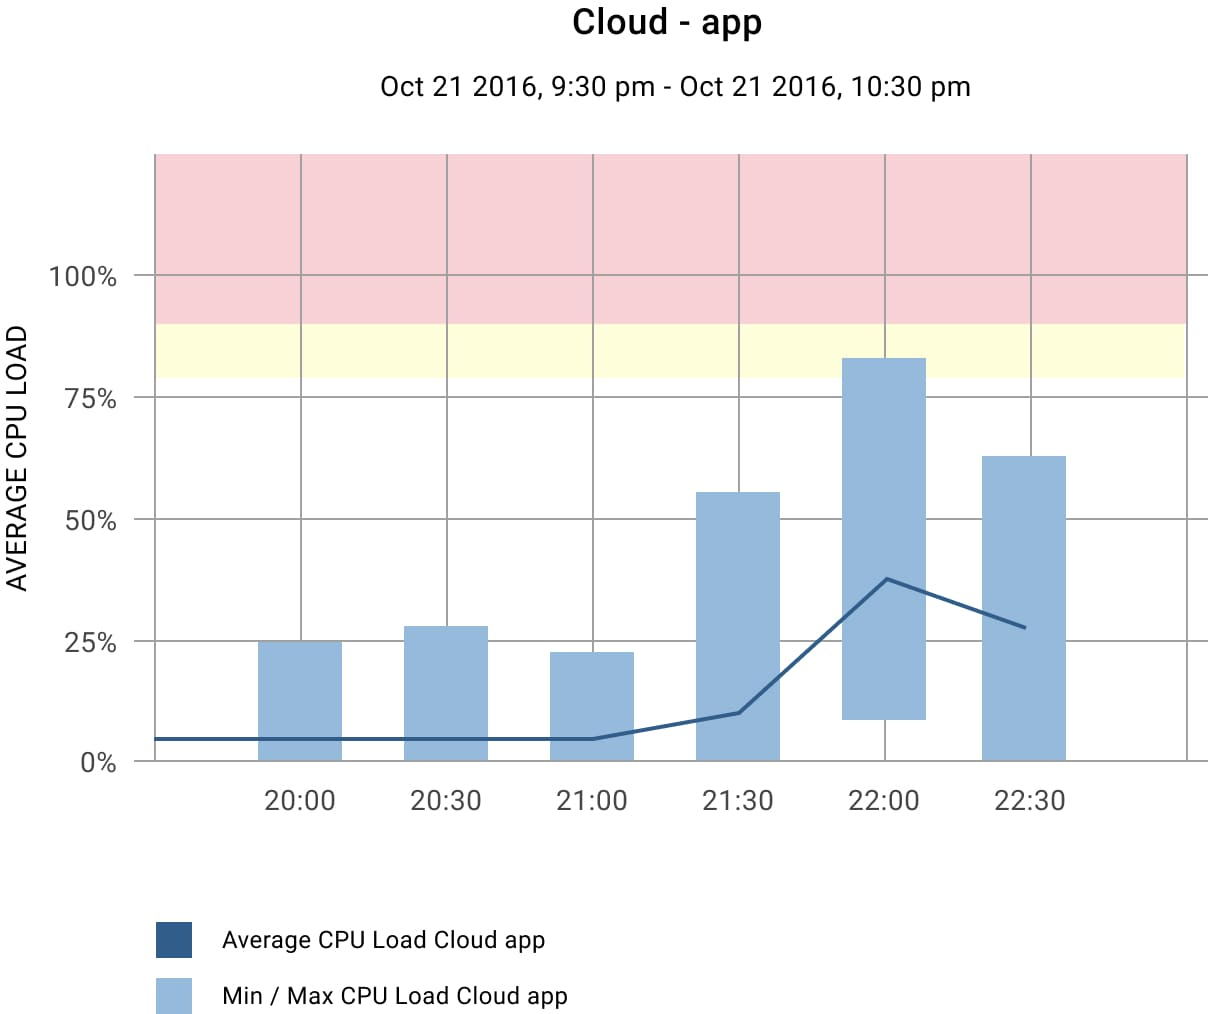 Demo project on monitoring system (Cloud app)